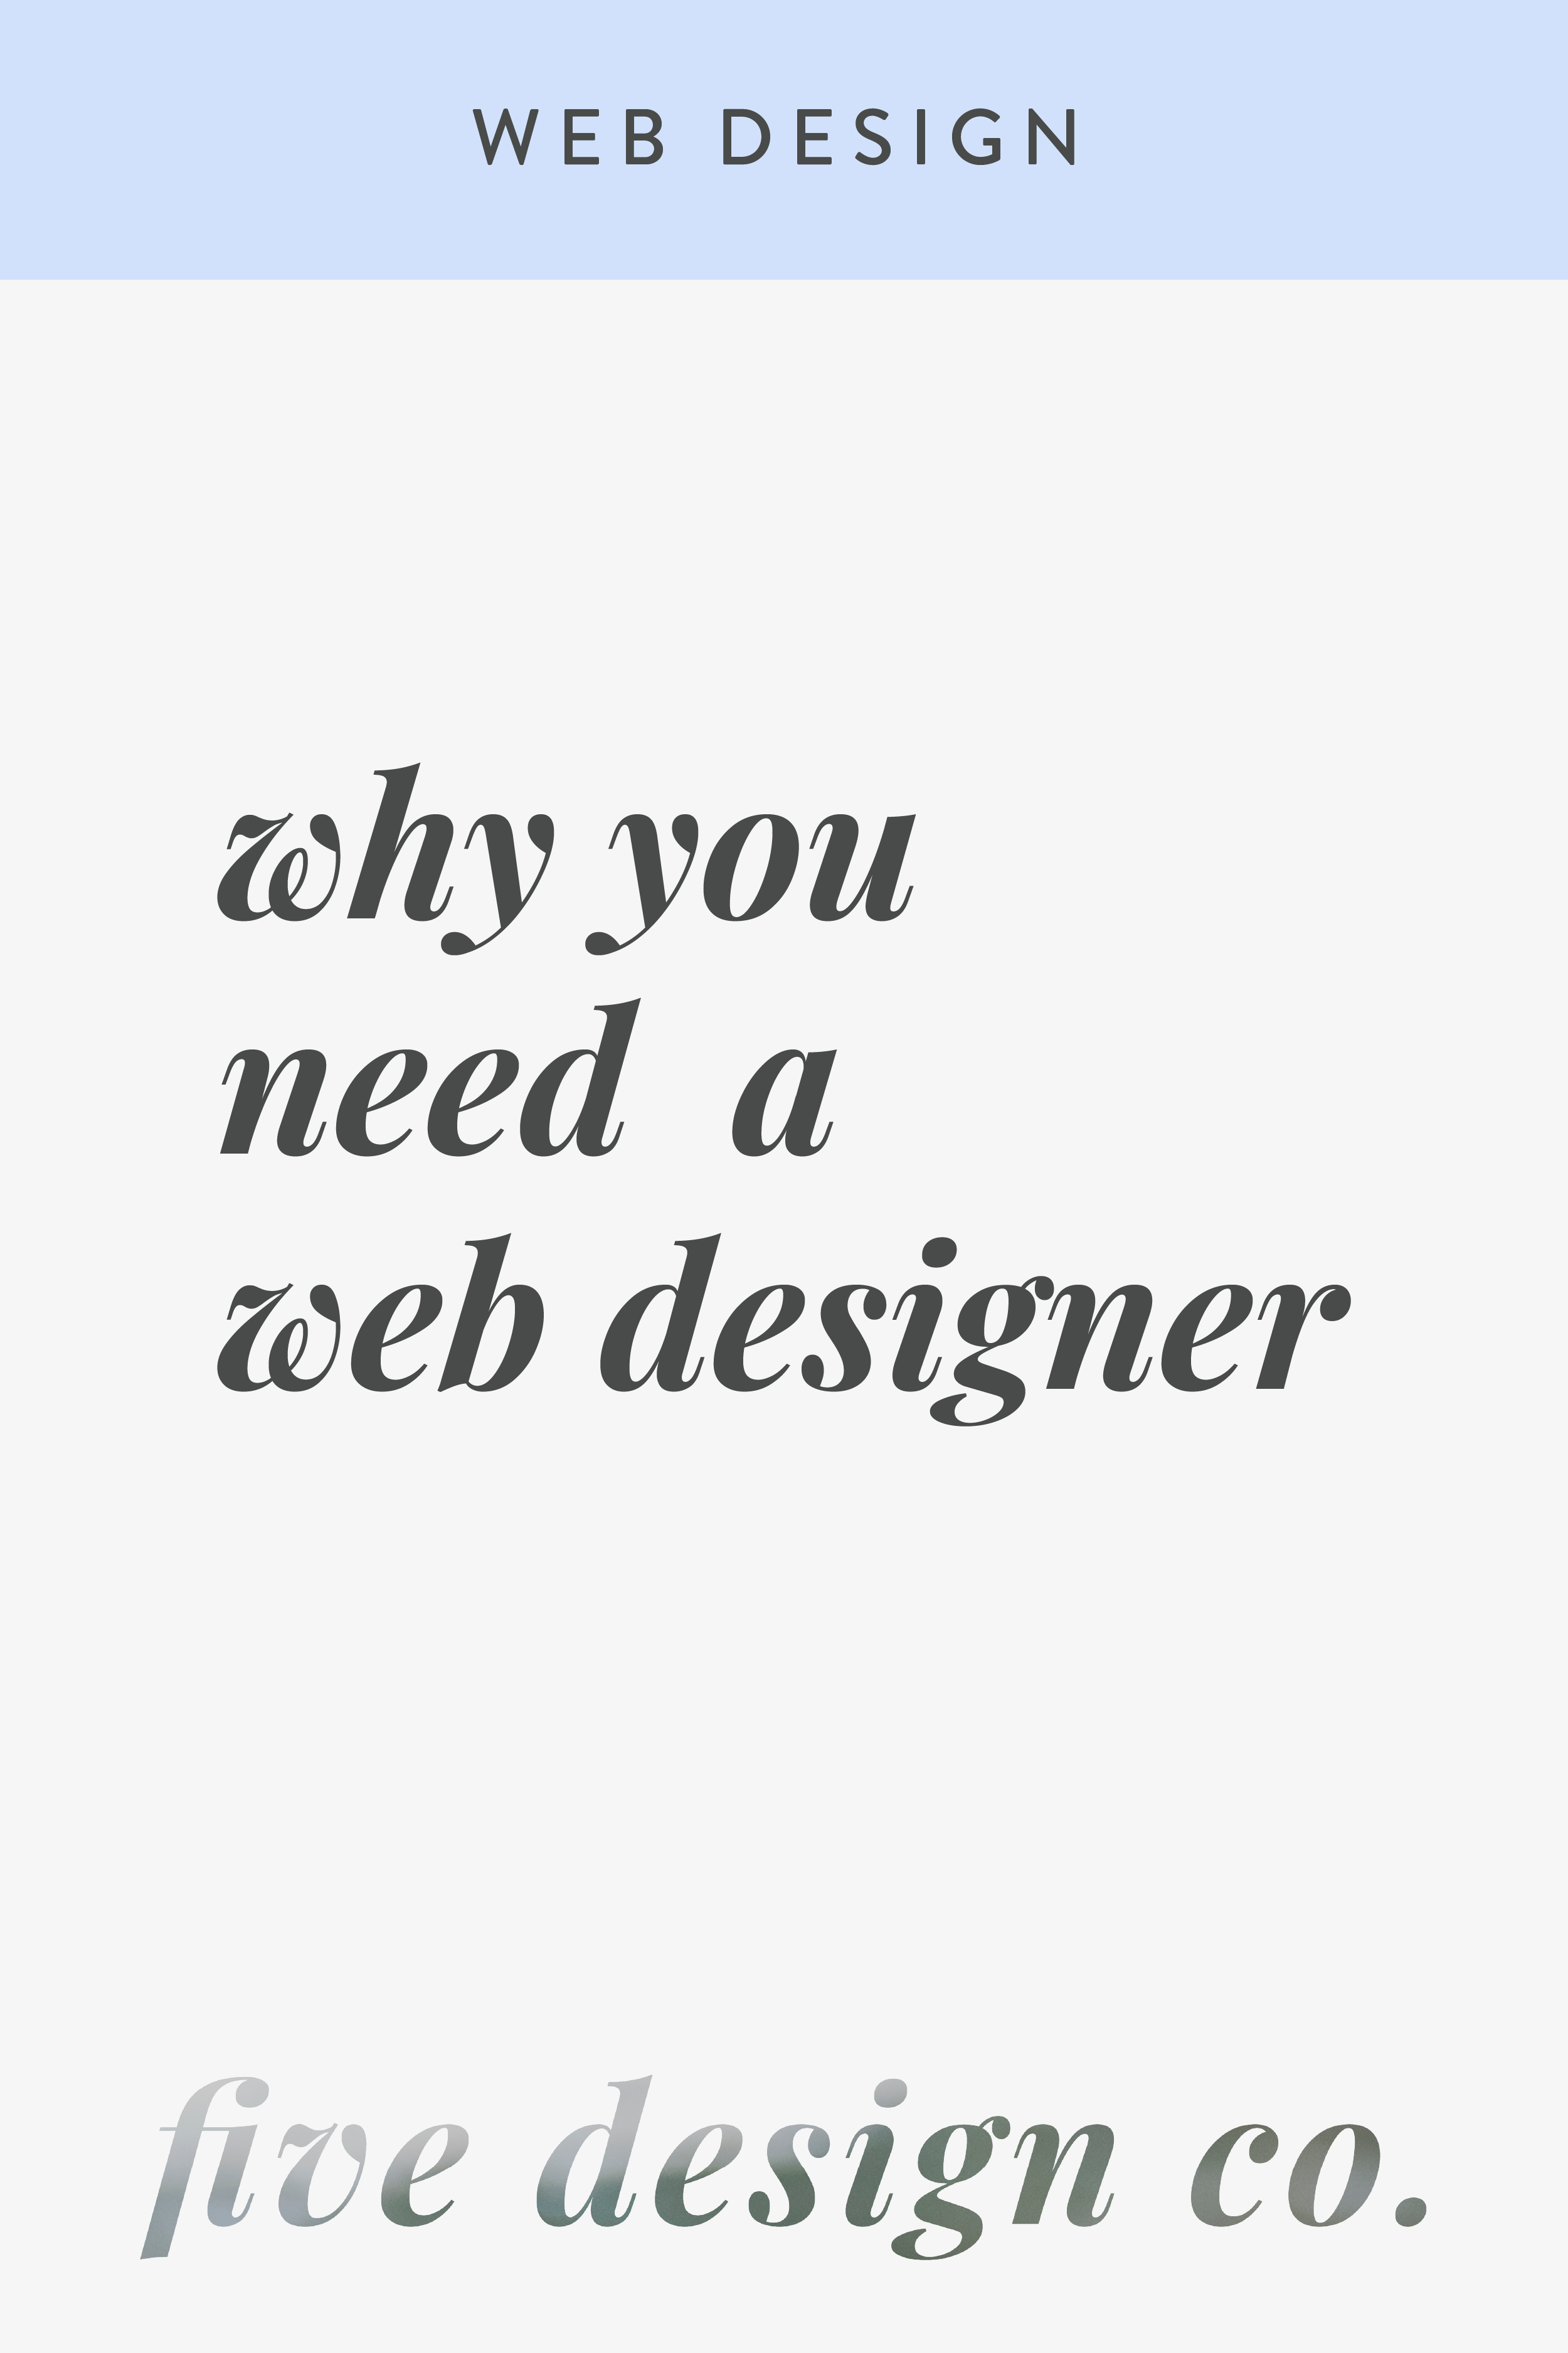 Why You Need a Web Designer is part of Web design, Web design tips, Custom web design, Squarespace website design, Email marketing strategy, Squarespace website - All about why you do (or do not) need a professional web designer to help build a website for your business  Plus, examples of custom web design features & functionality for Squarespace websites—and how to tell if you can do them yourself or should hire a designer